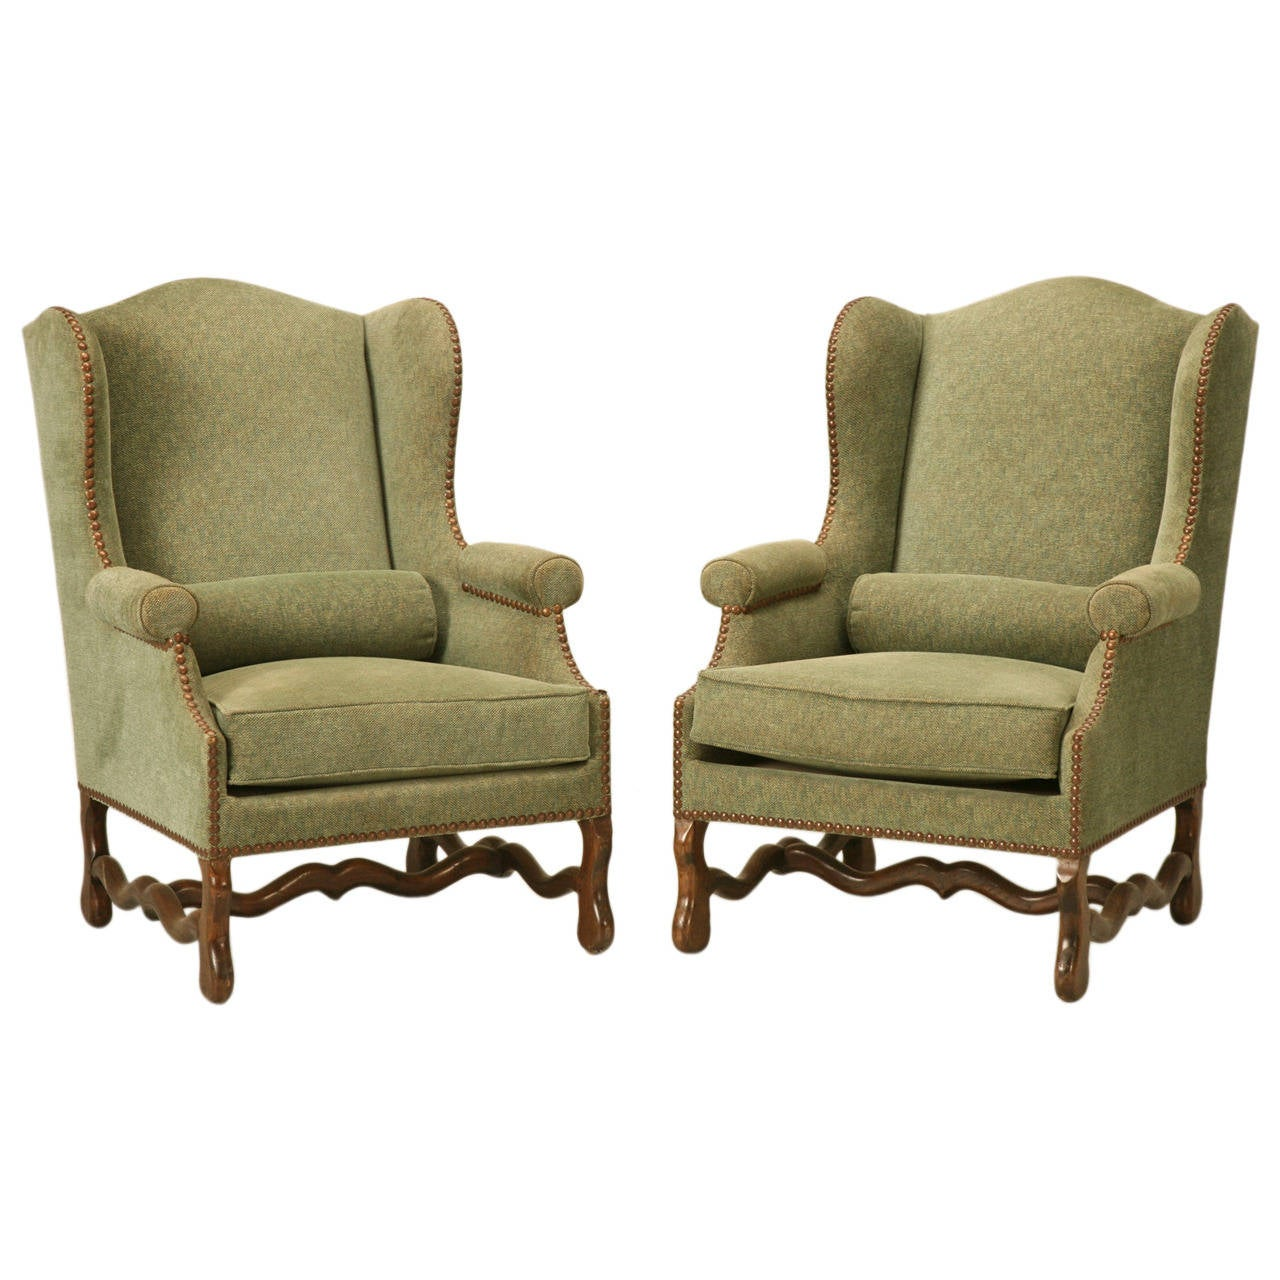 Vintage French Pair of Os de Mouton Wingback Armchairs